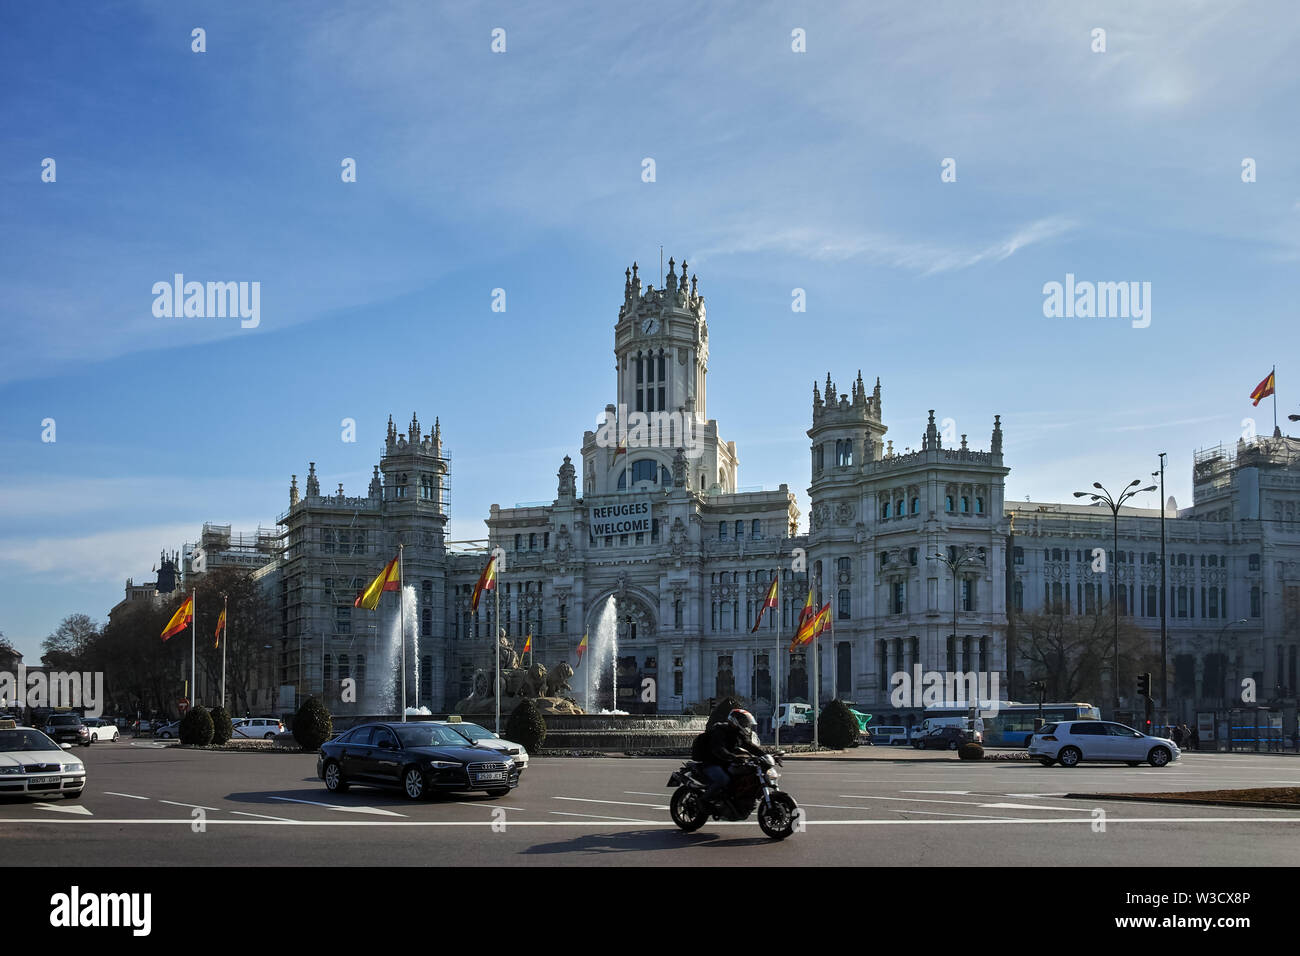 MADRID, SPAIN - JANUARY 24, 2018: Palace of Cibeles at Cibeles square in City of Madrid, Spain - Stock Image